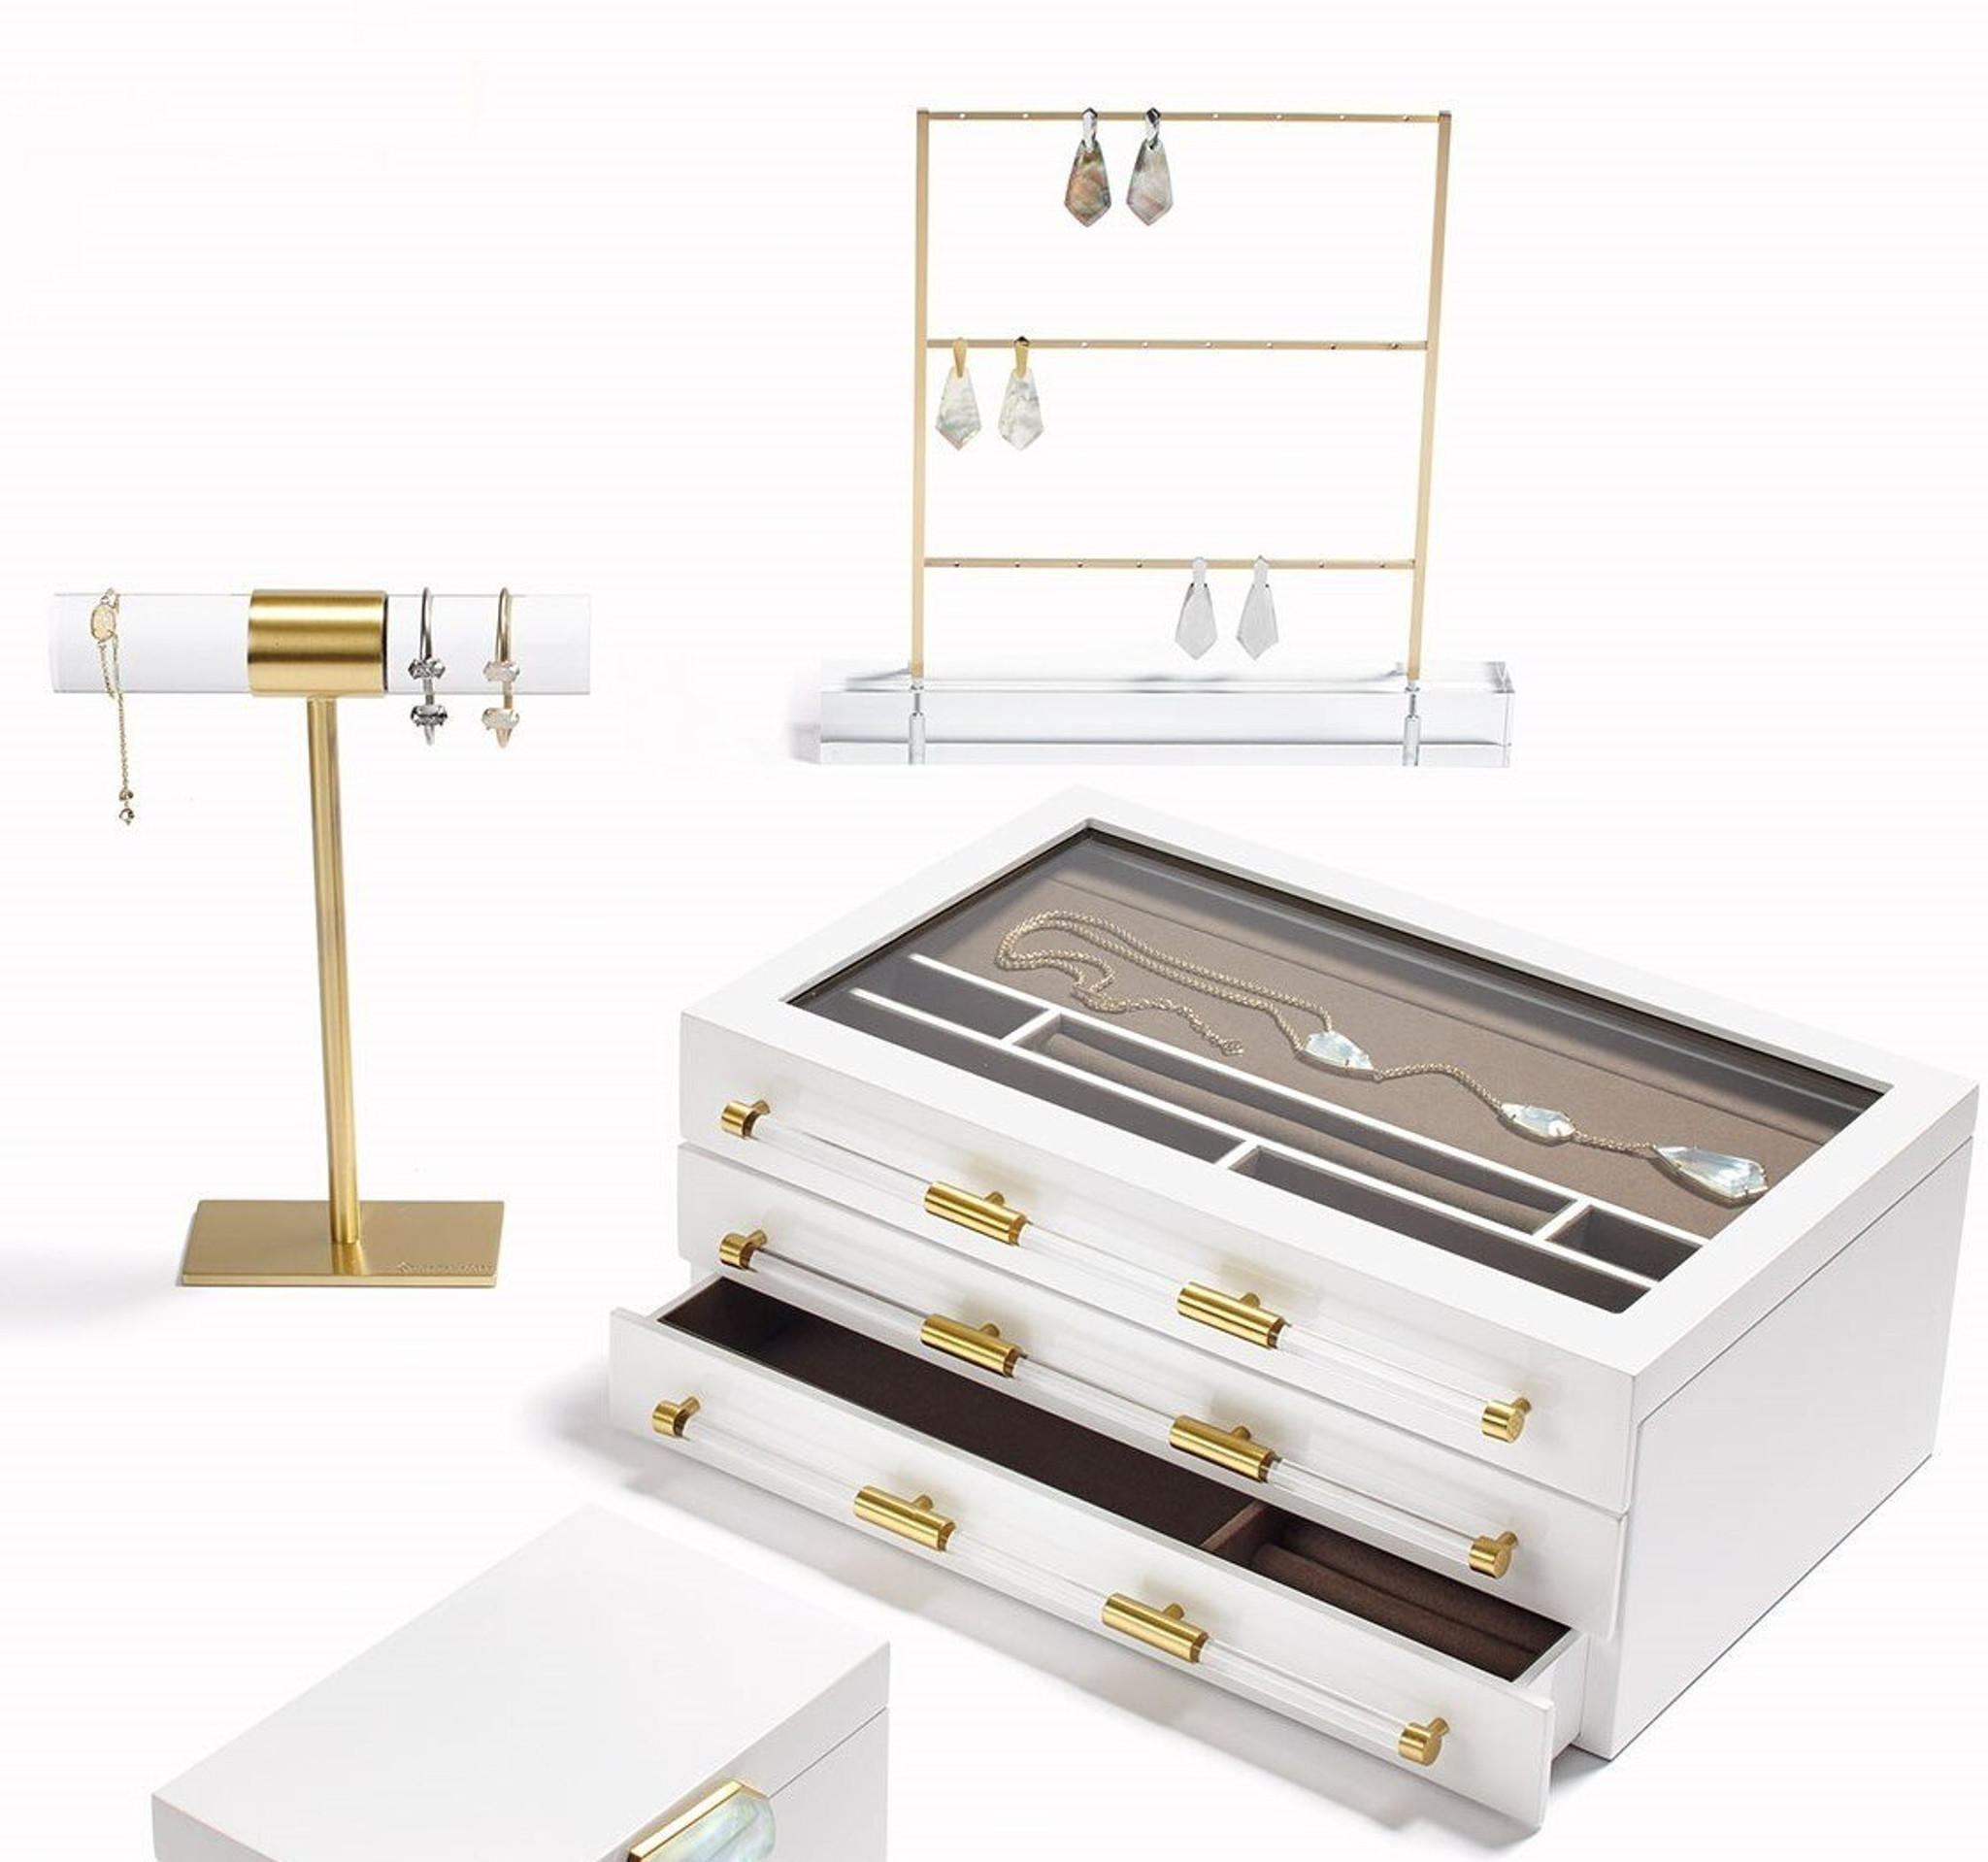 jewelry boxes with acrylic handles kendra scott drawers mirror clear panel top